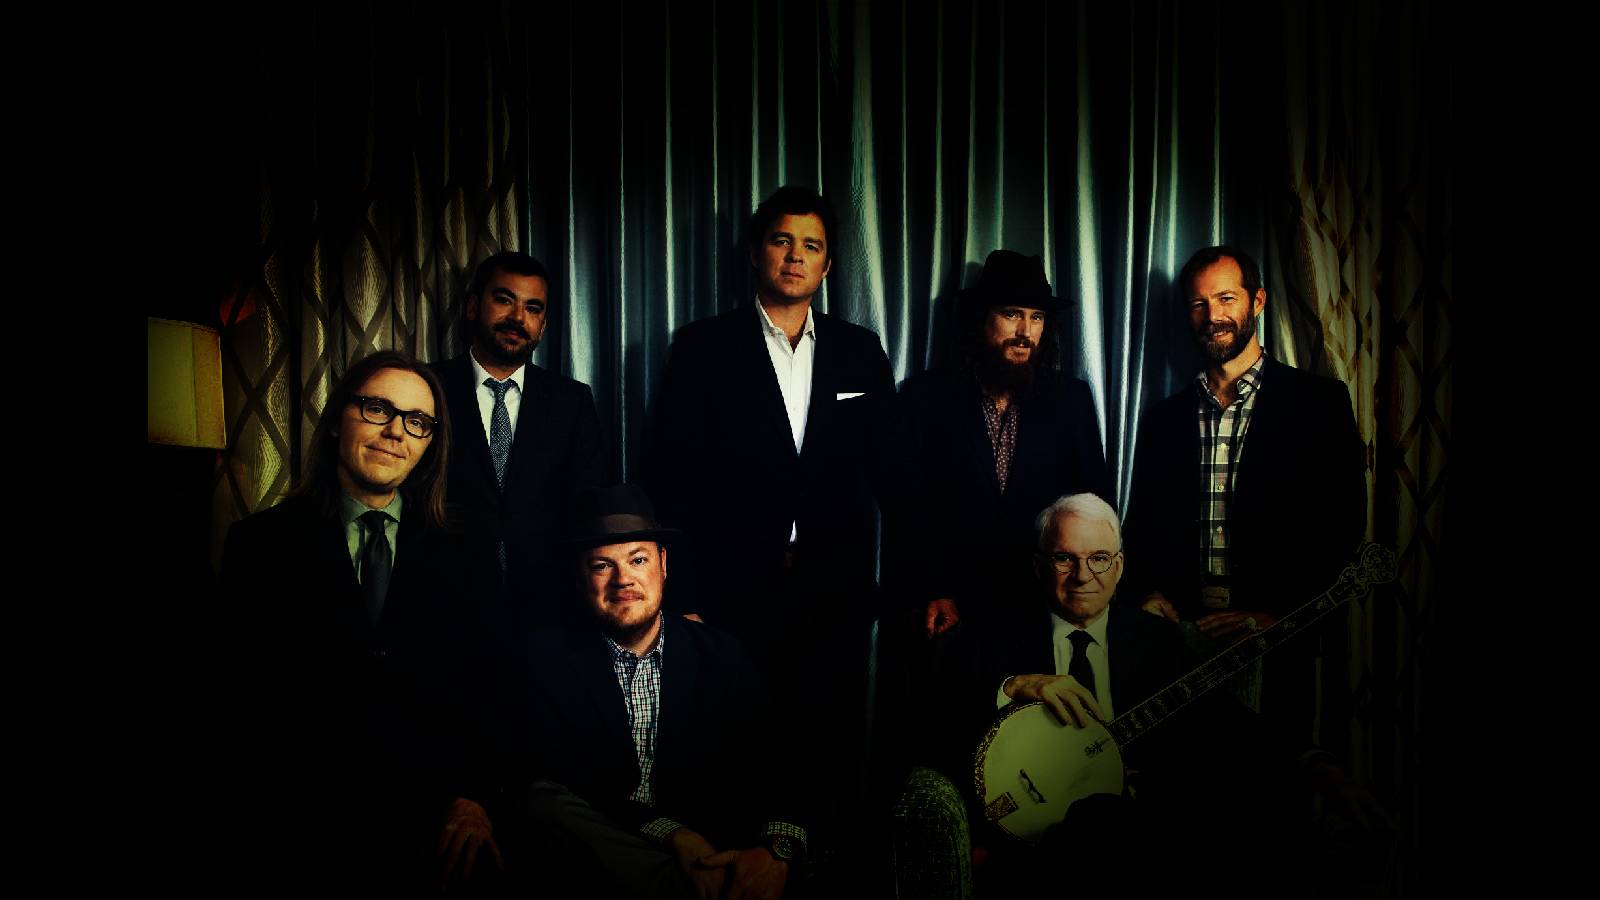 Steep Canyon Rangers (Rescheduled from 4/4)